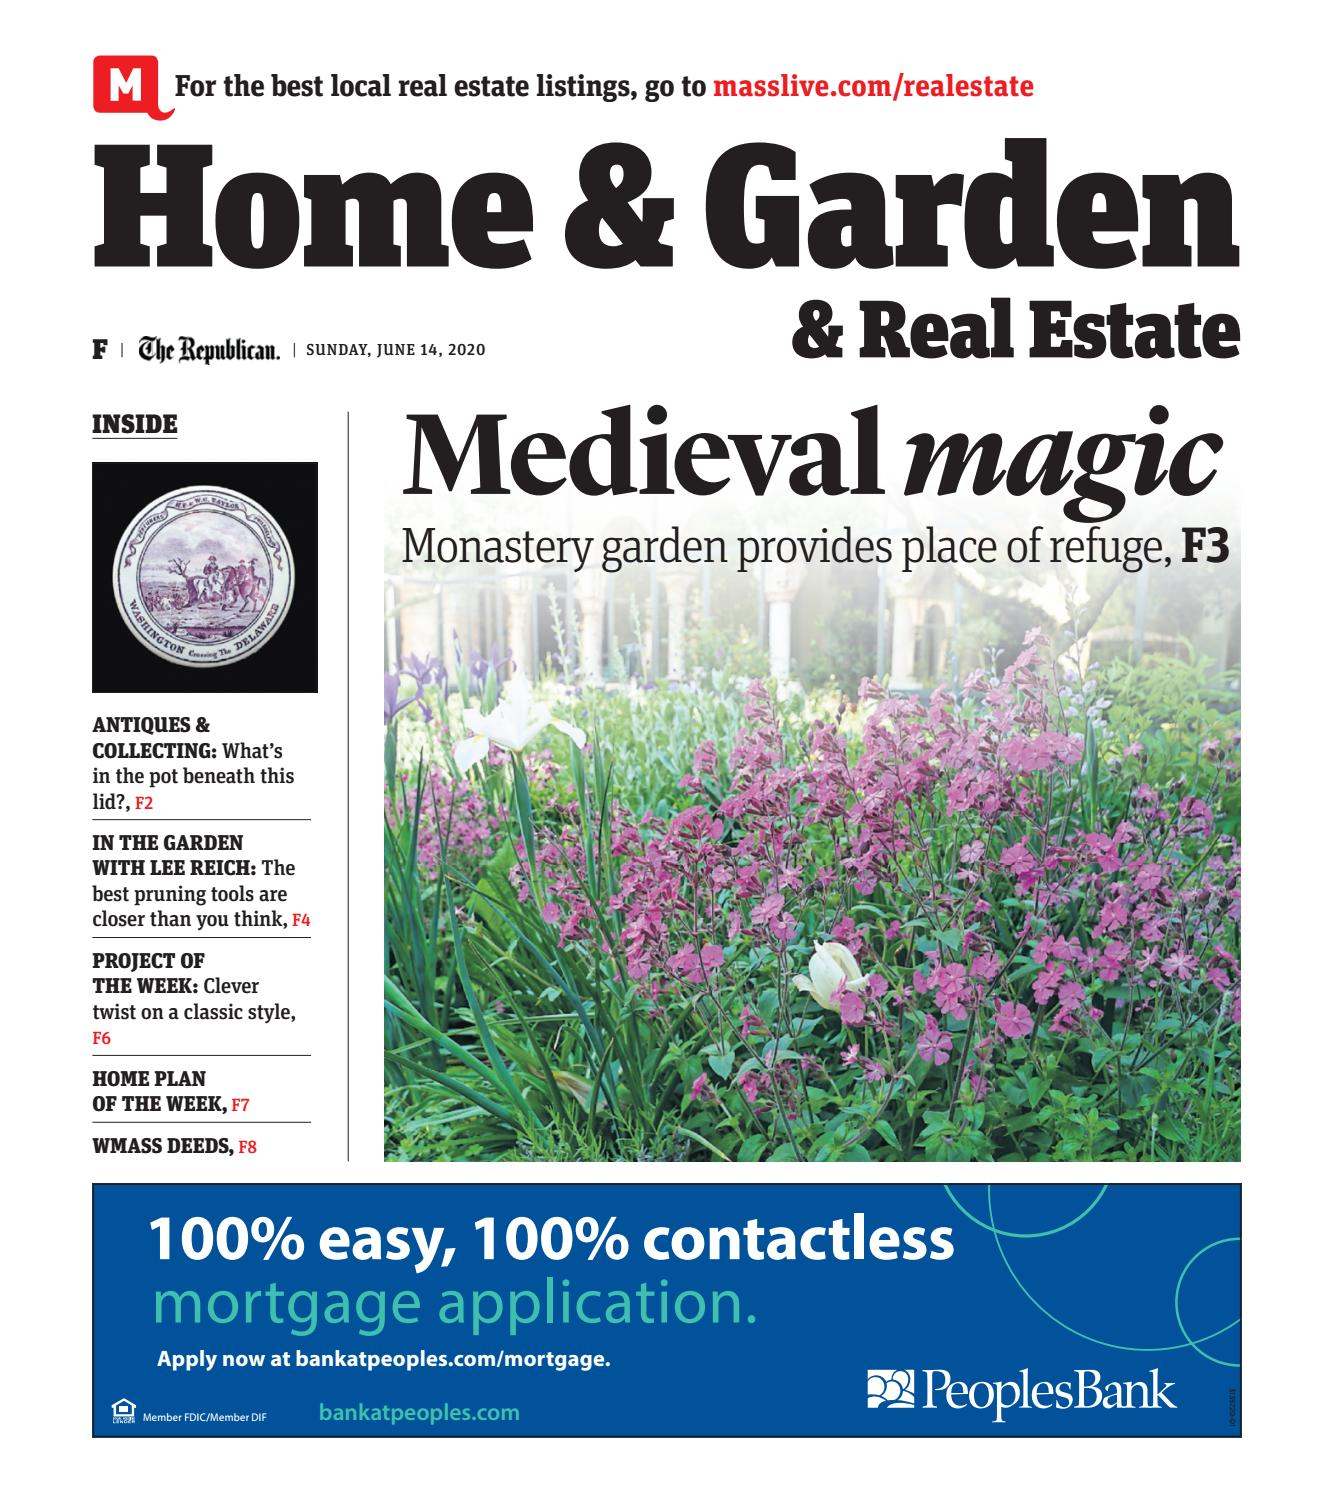 Home and Garden, and Real Estate June14, 2020 by repubnews